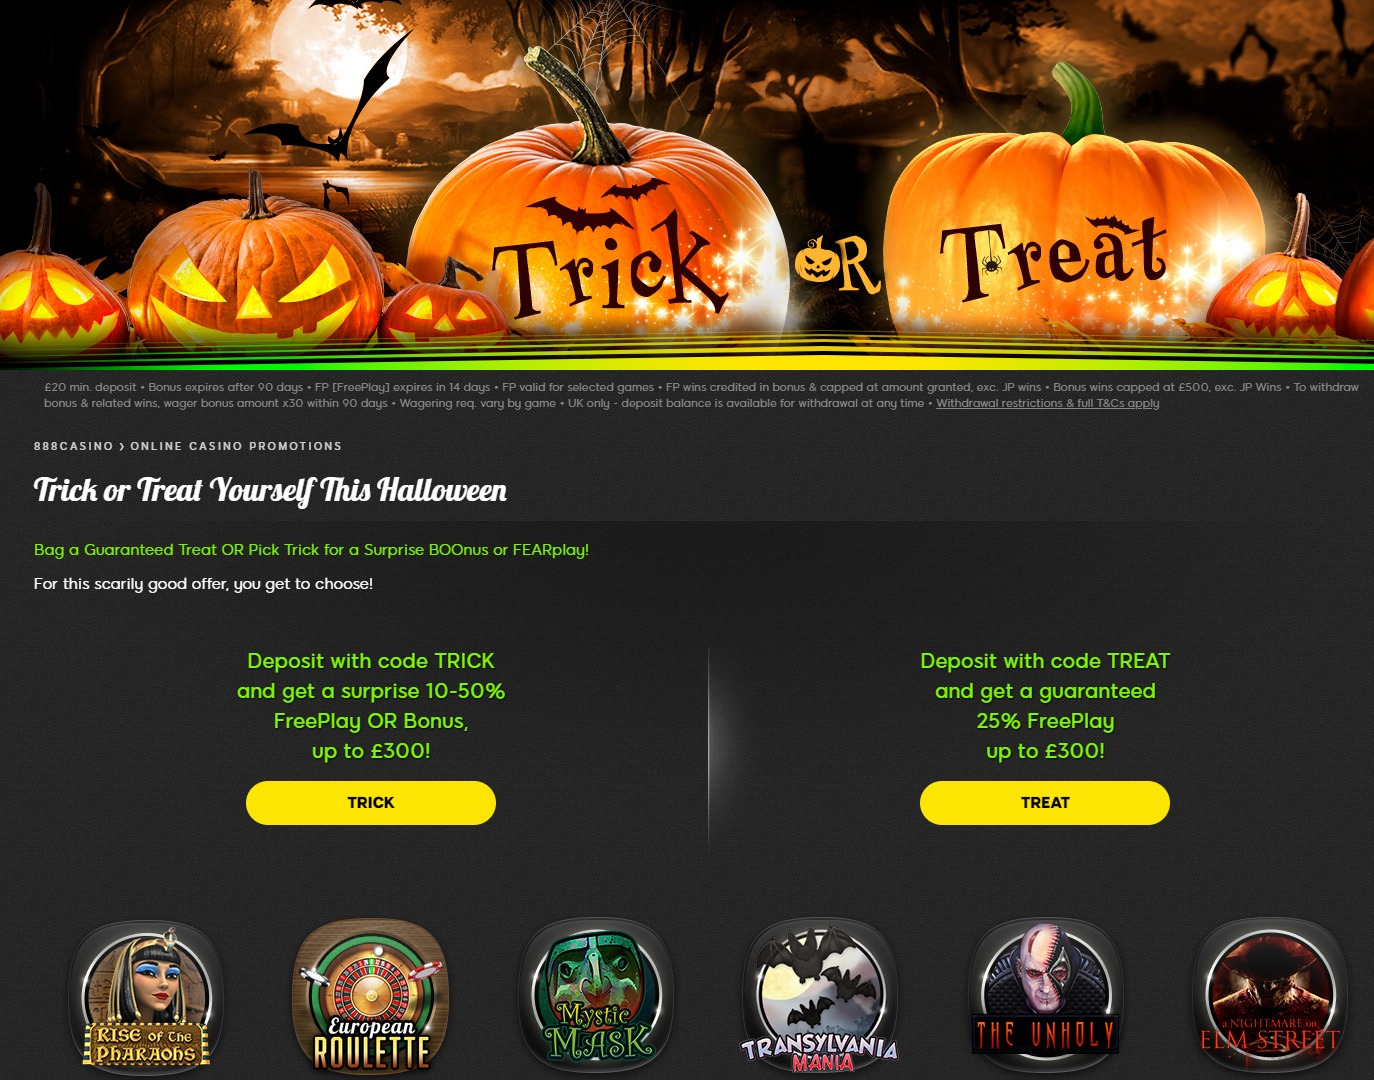 Get In The Halloween Spirit with Spooky Casino Promotions